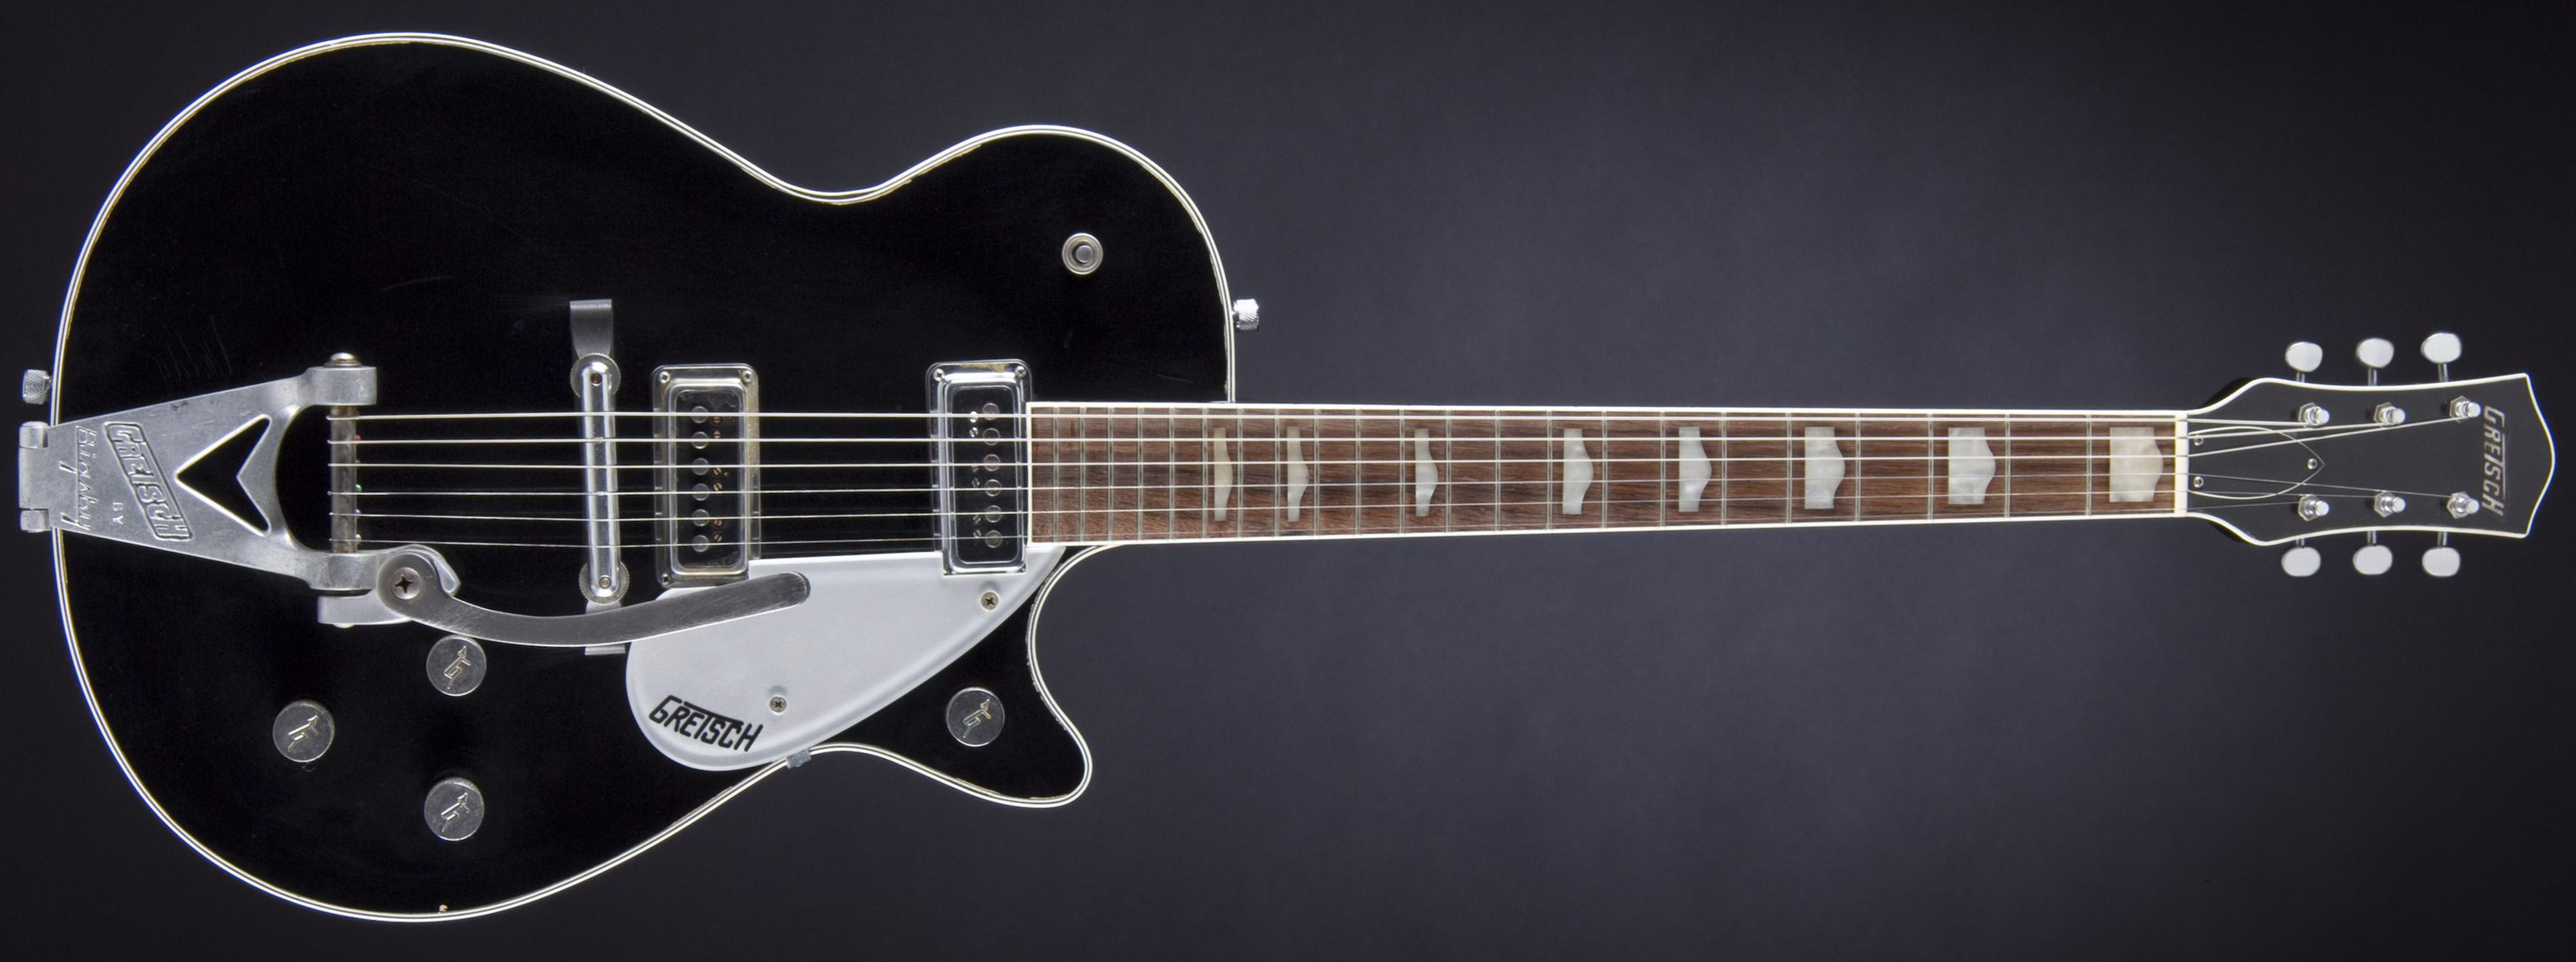 GRETSCH G6128T-GH George Harrison Tibute